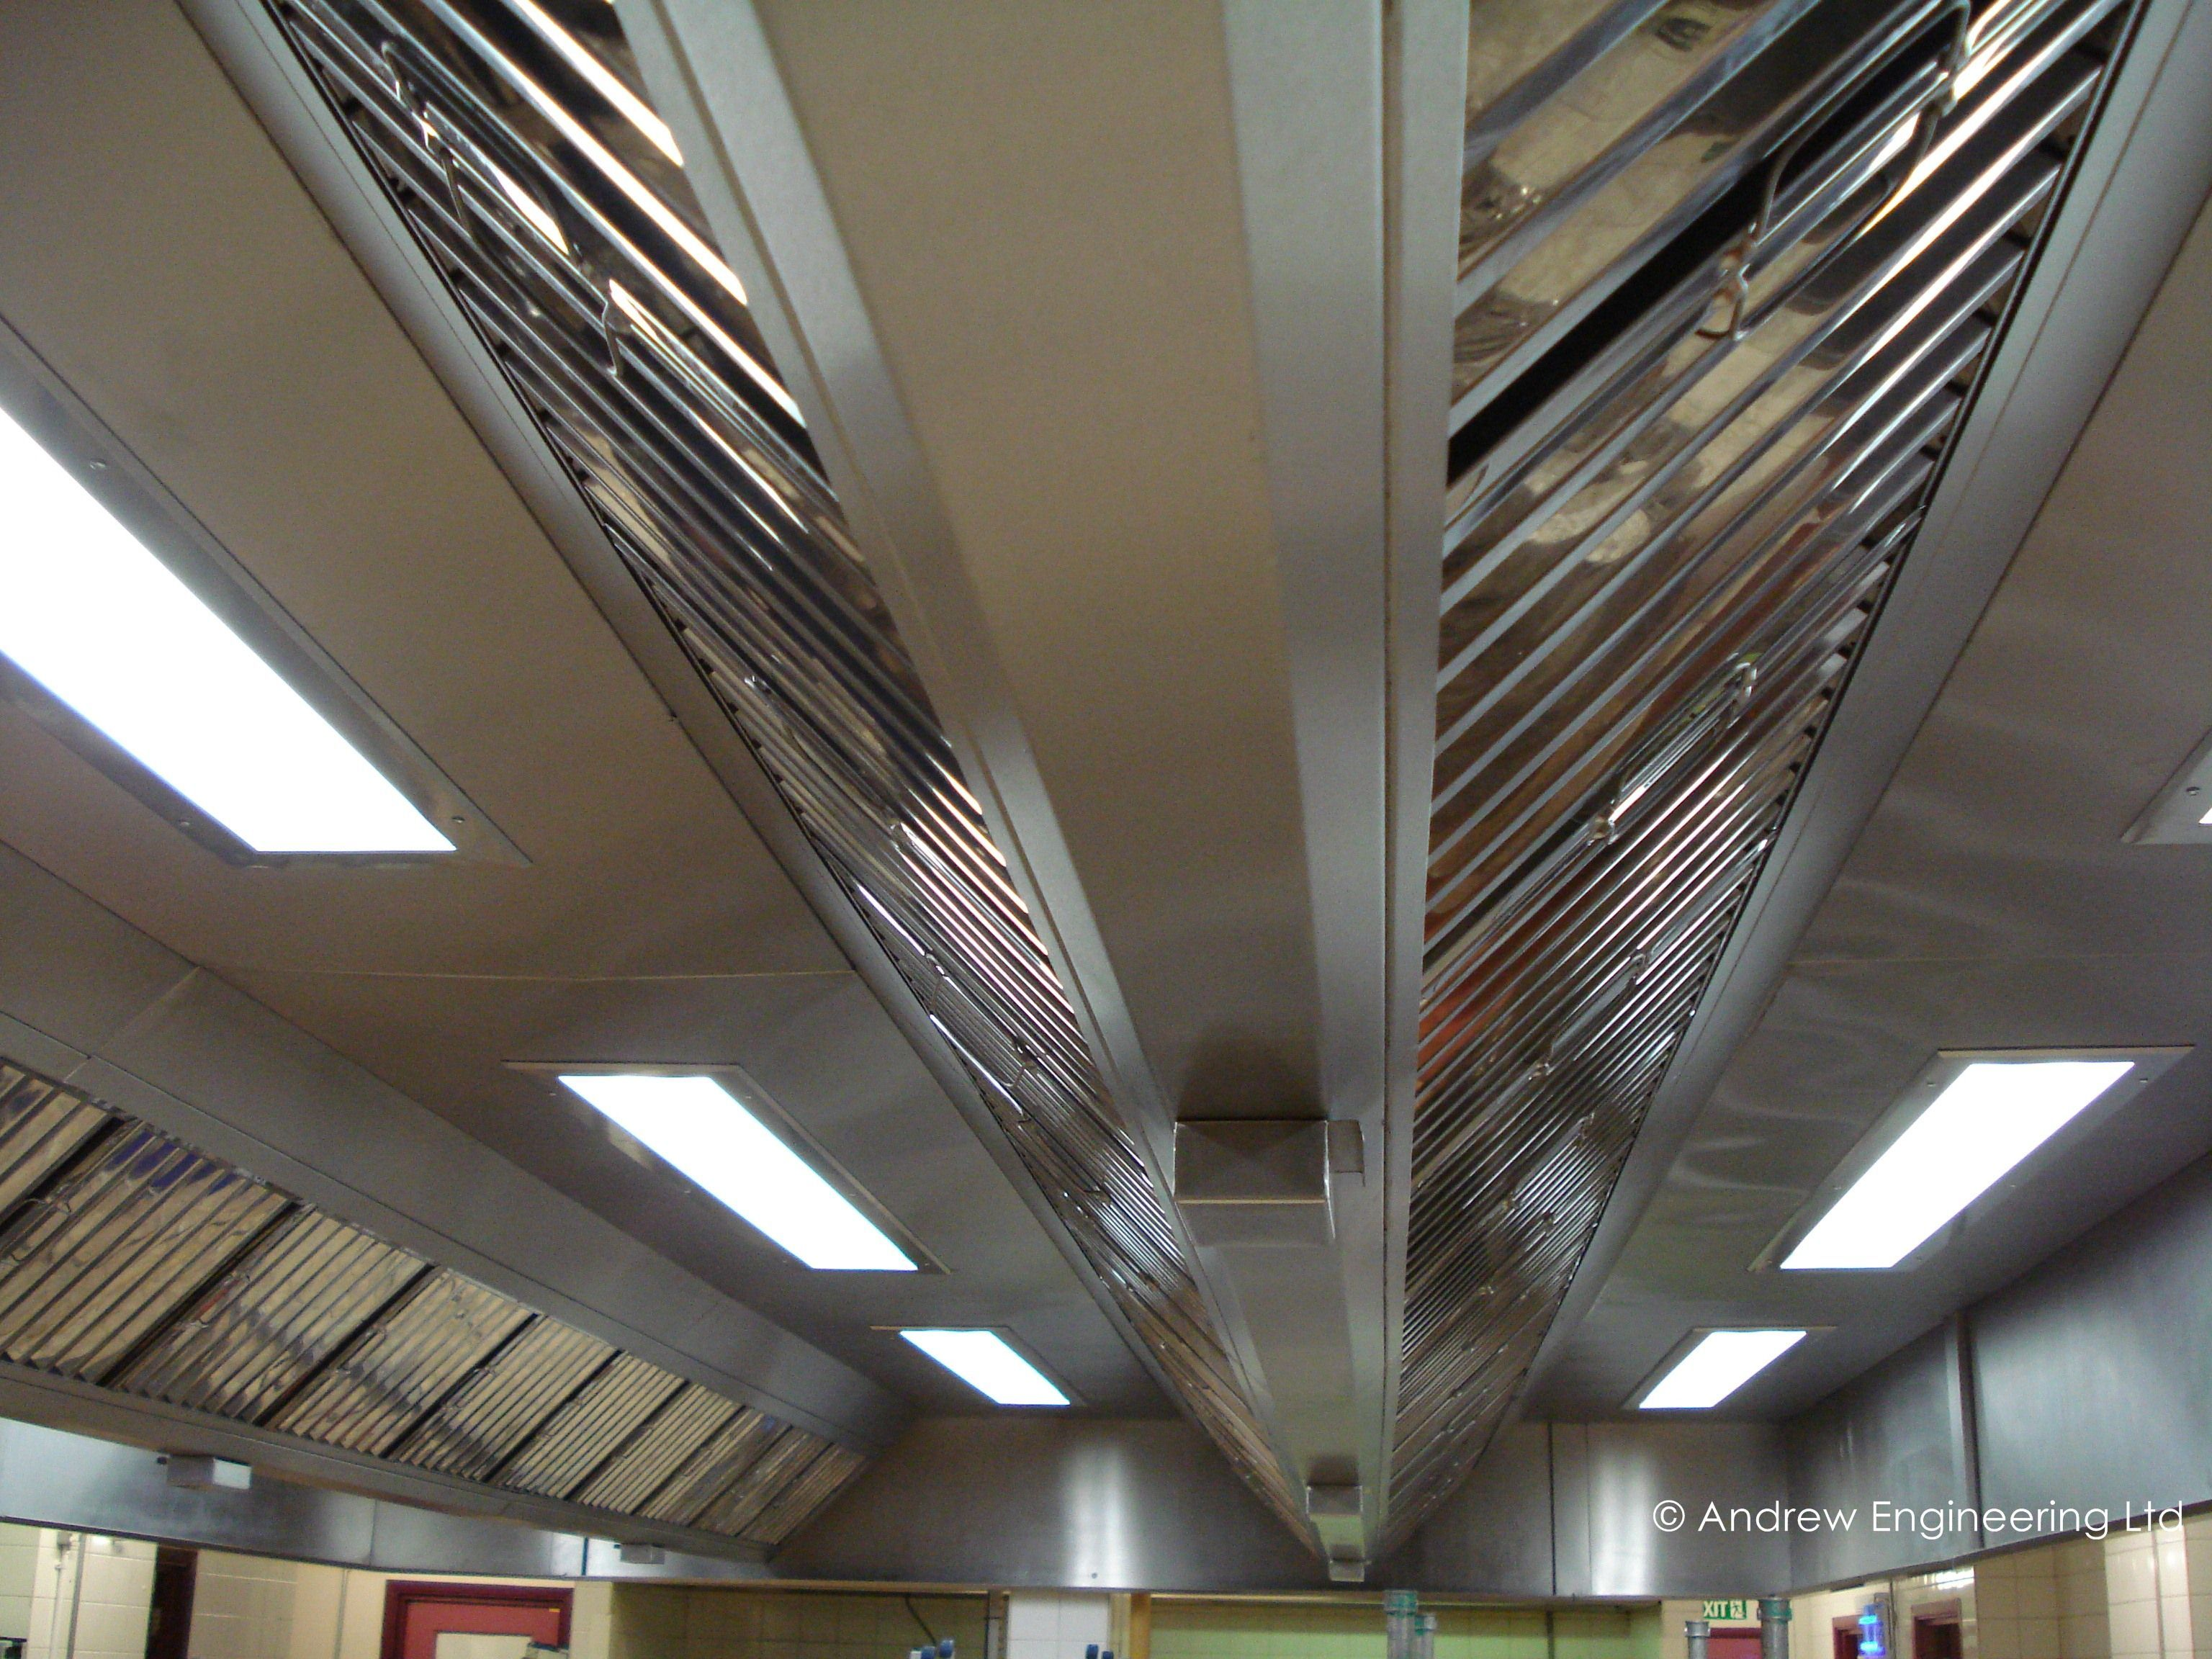 Island canopy with double bank of grease filters and recessed #2: 2712a8e0d4078da24bc9f3860d0b60a3